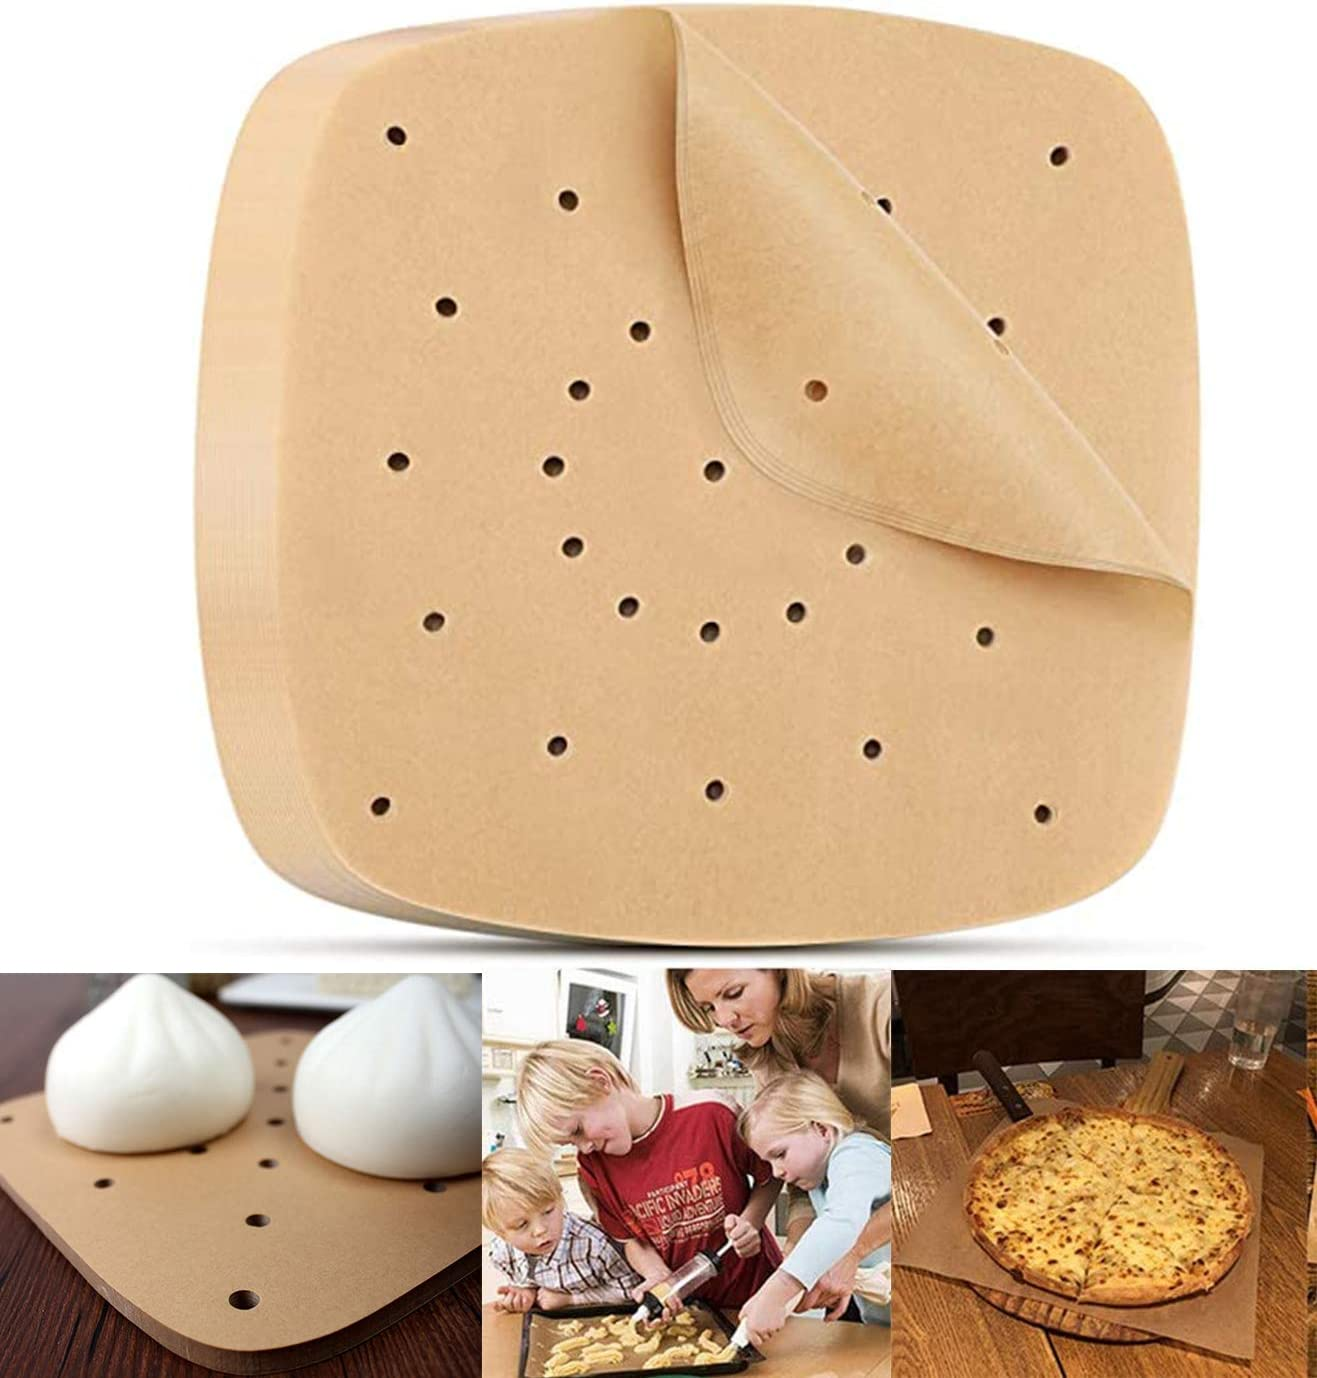 200 Pcs Air Fryer Parchment Paper, 7.5 Inch Perforated Parchment Paper for Air Fryer Unbleached Parchment Paper Baking Paper for Air Fryer Steaming Basket